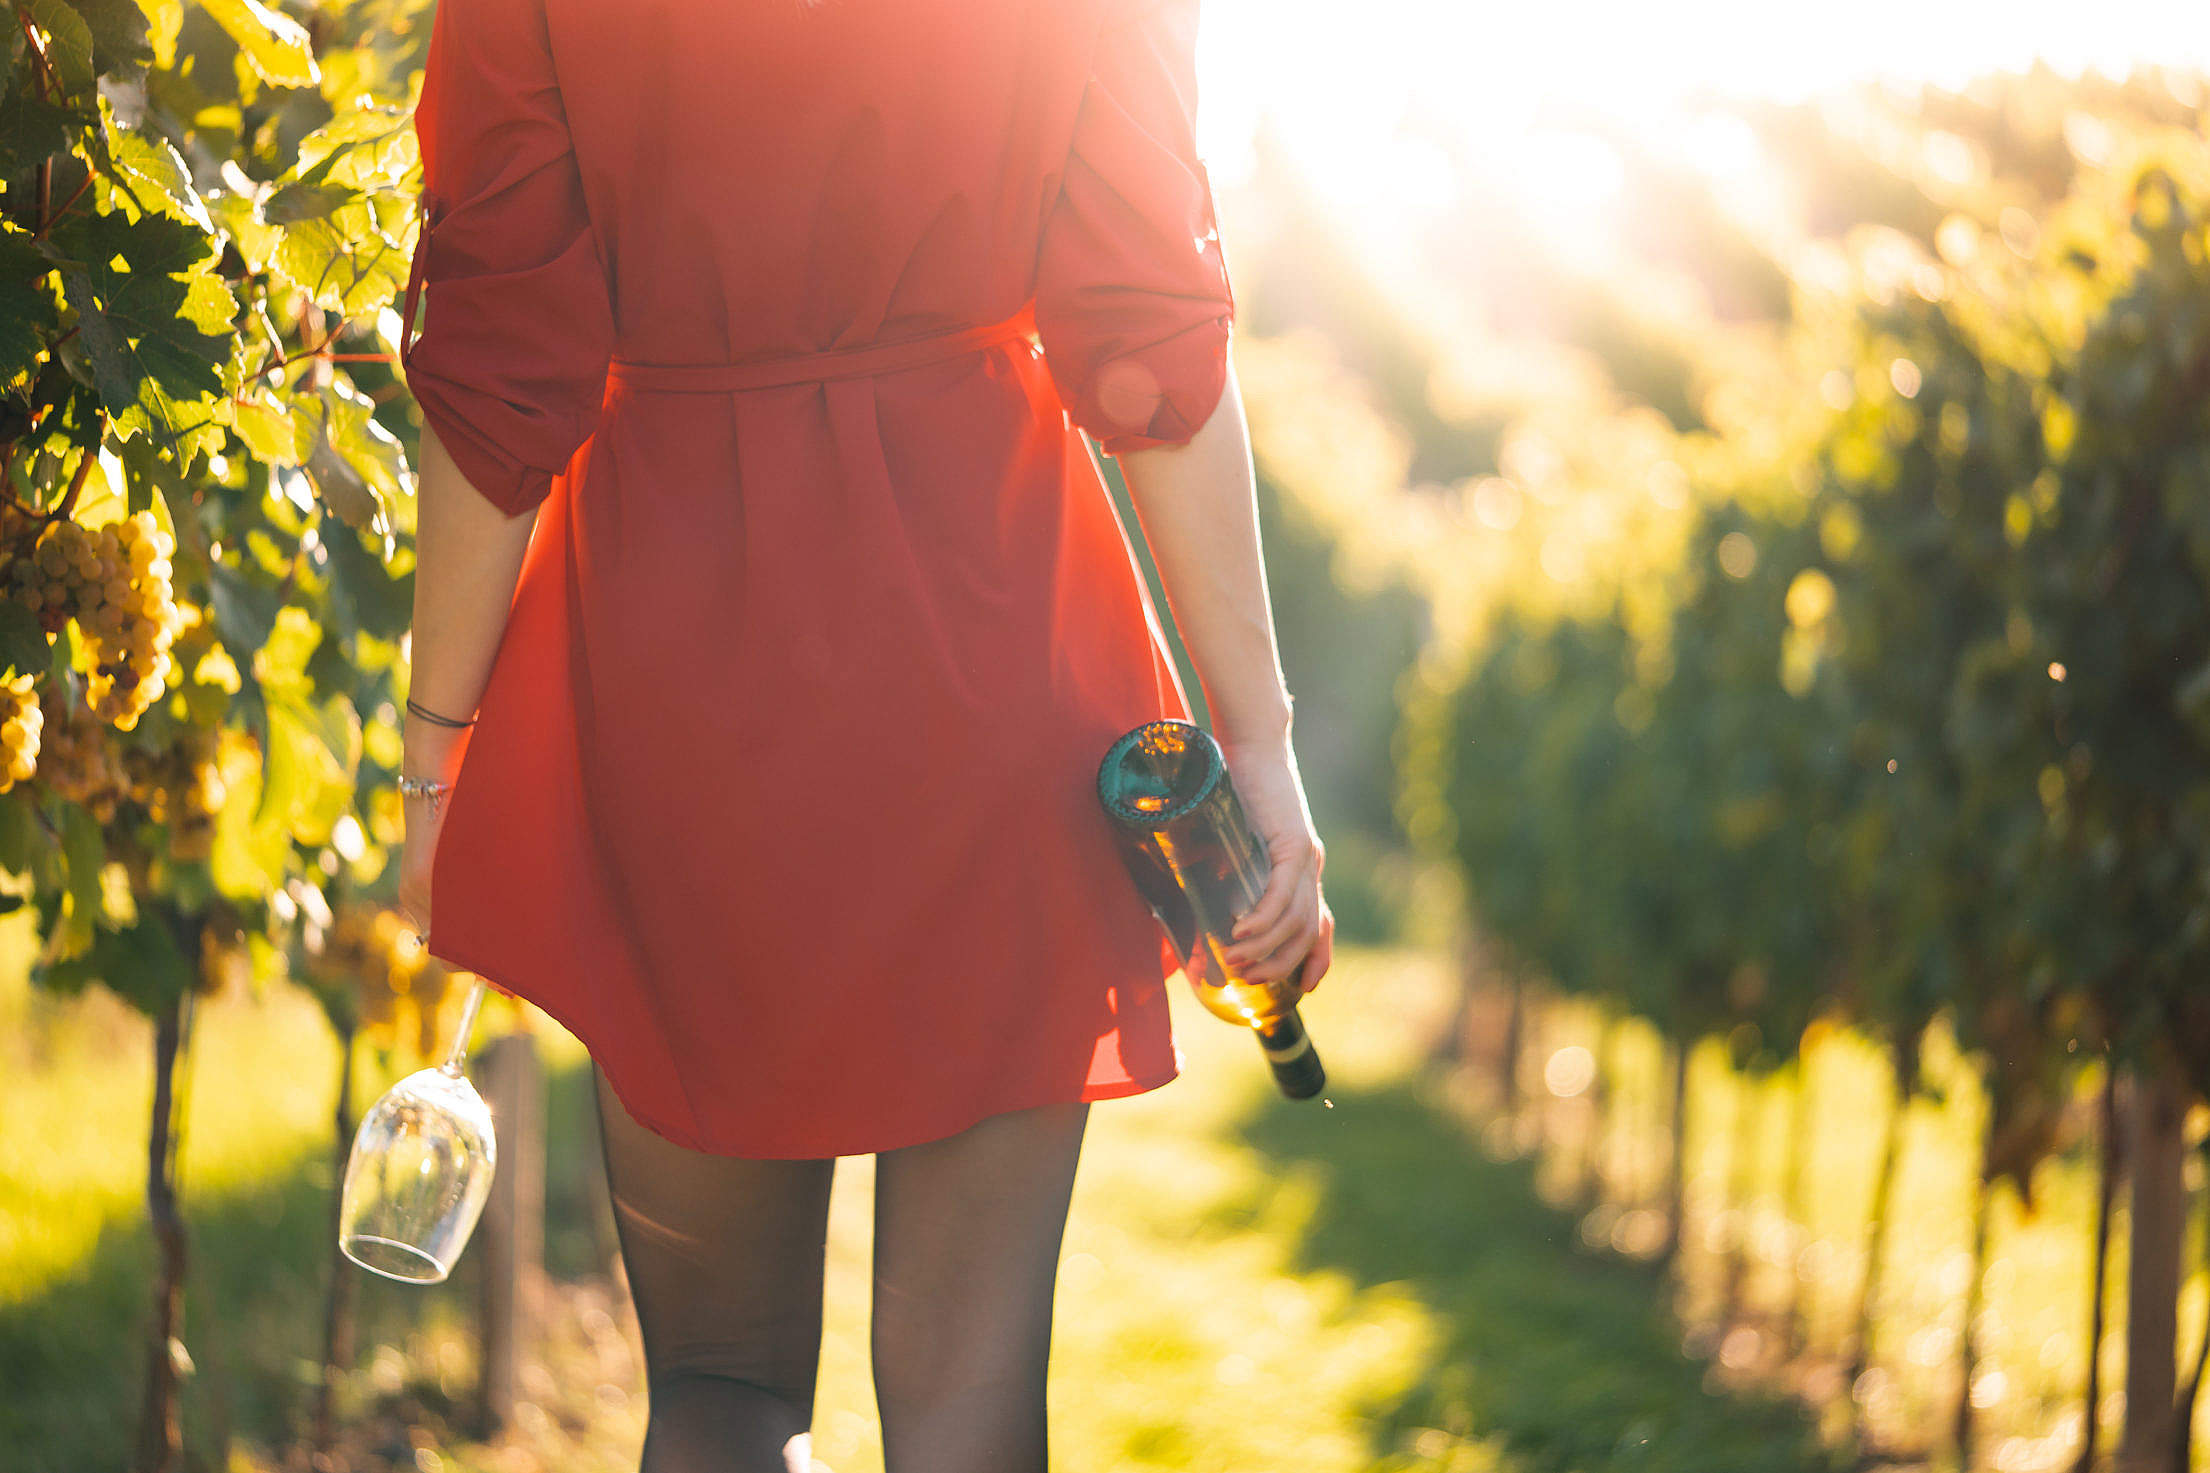 Woman in Red Dress Walking in a Vineyard Free Stock Photo